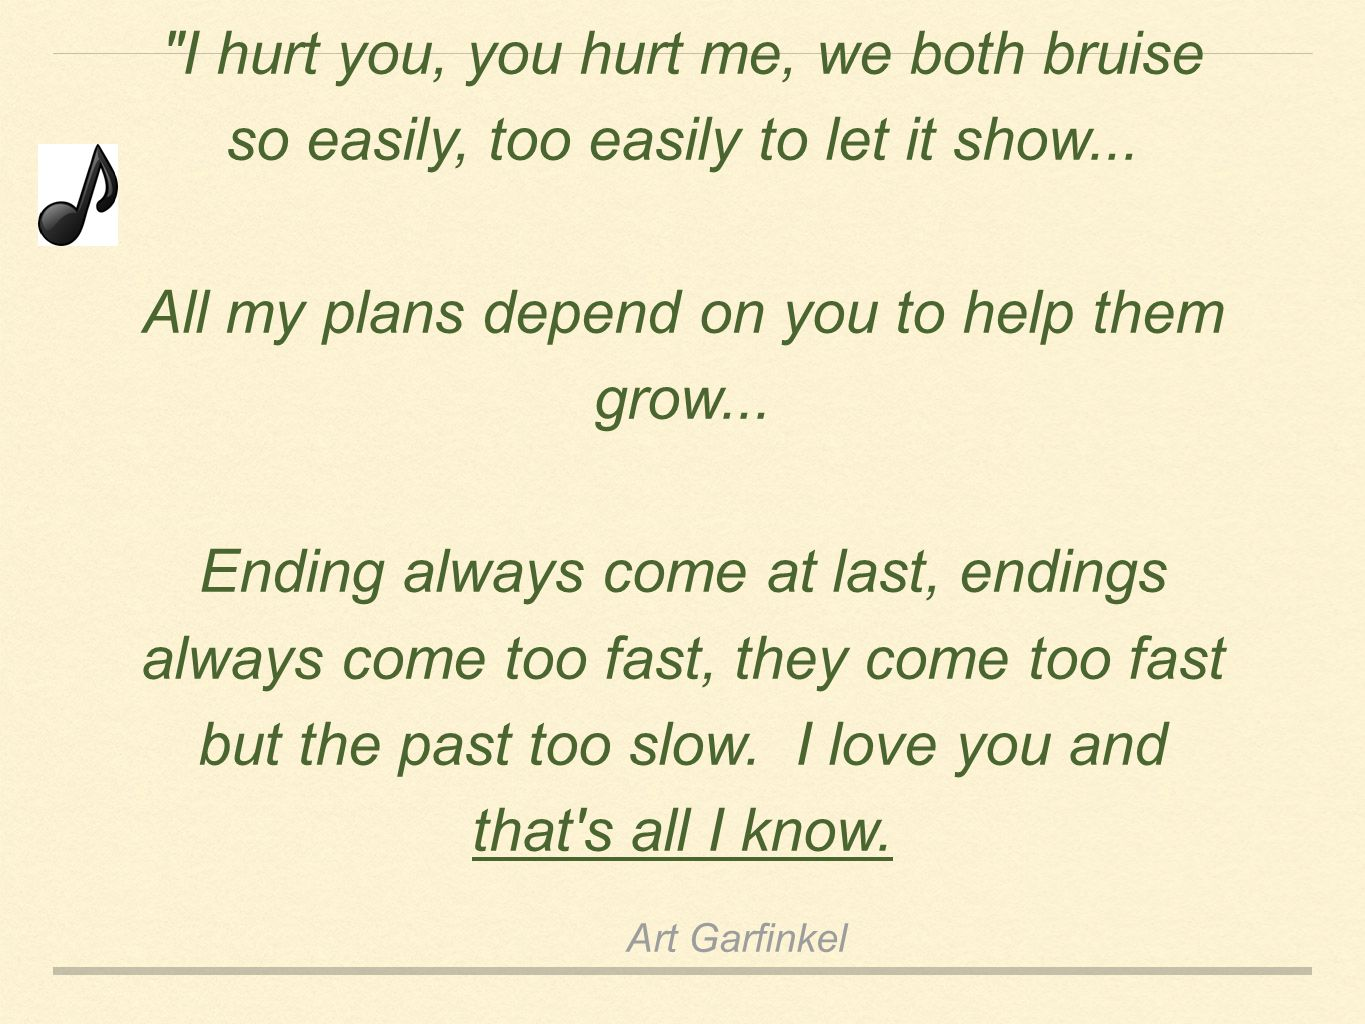 Art Garfinkel I hurt you, you hurt me, we both bruise so easily, too easily to let it show...